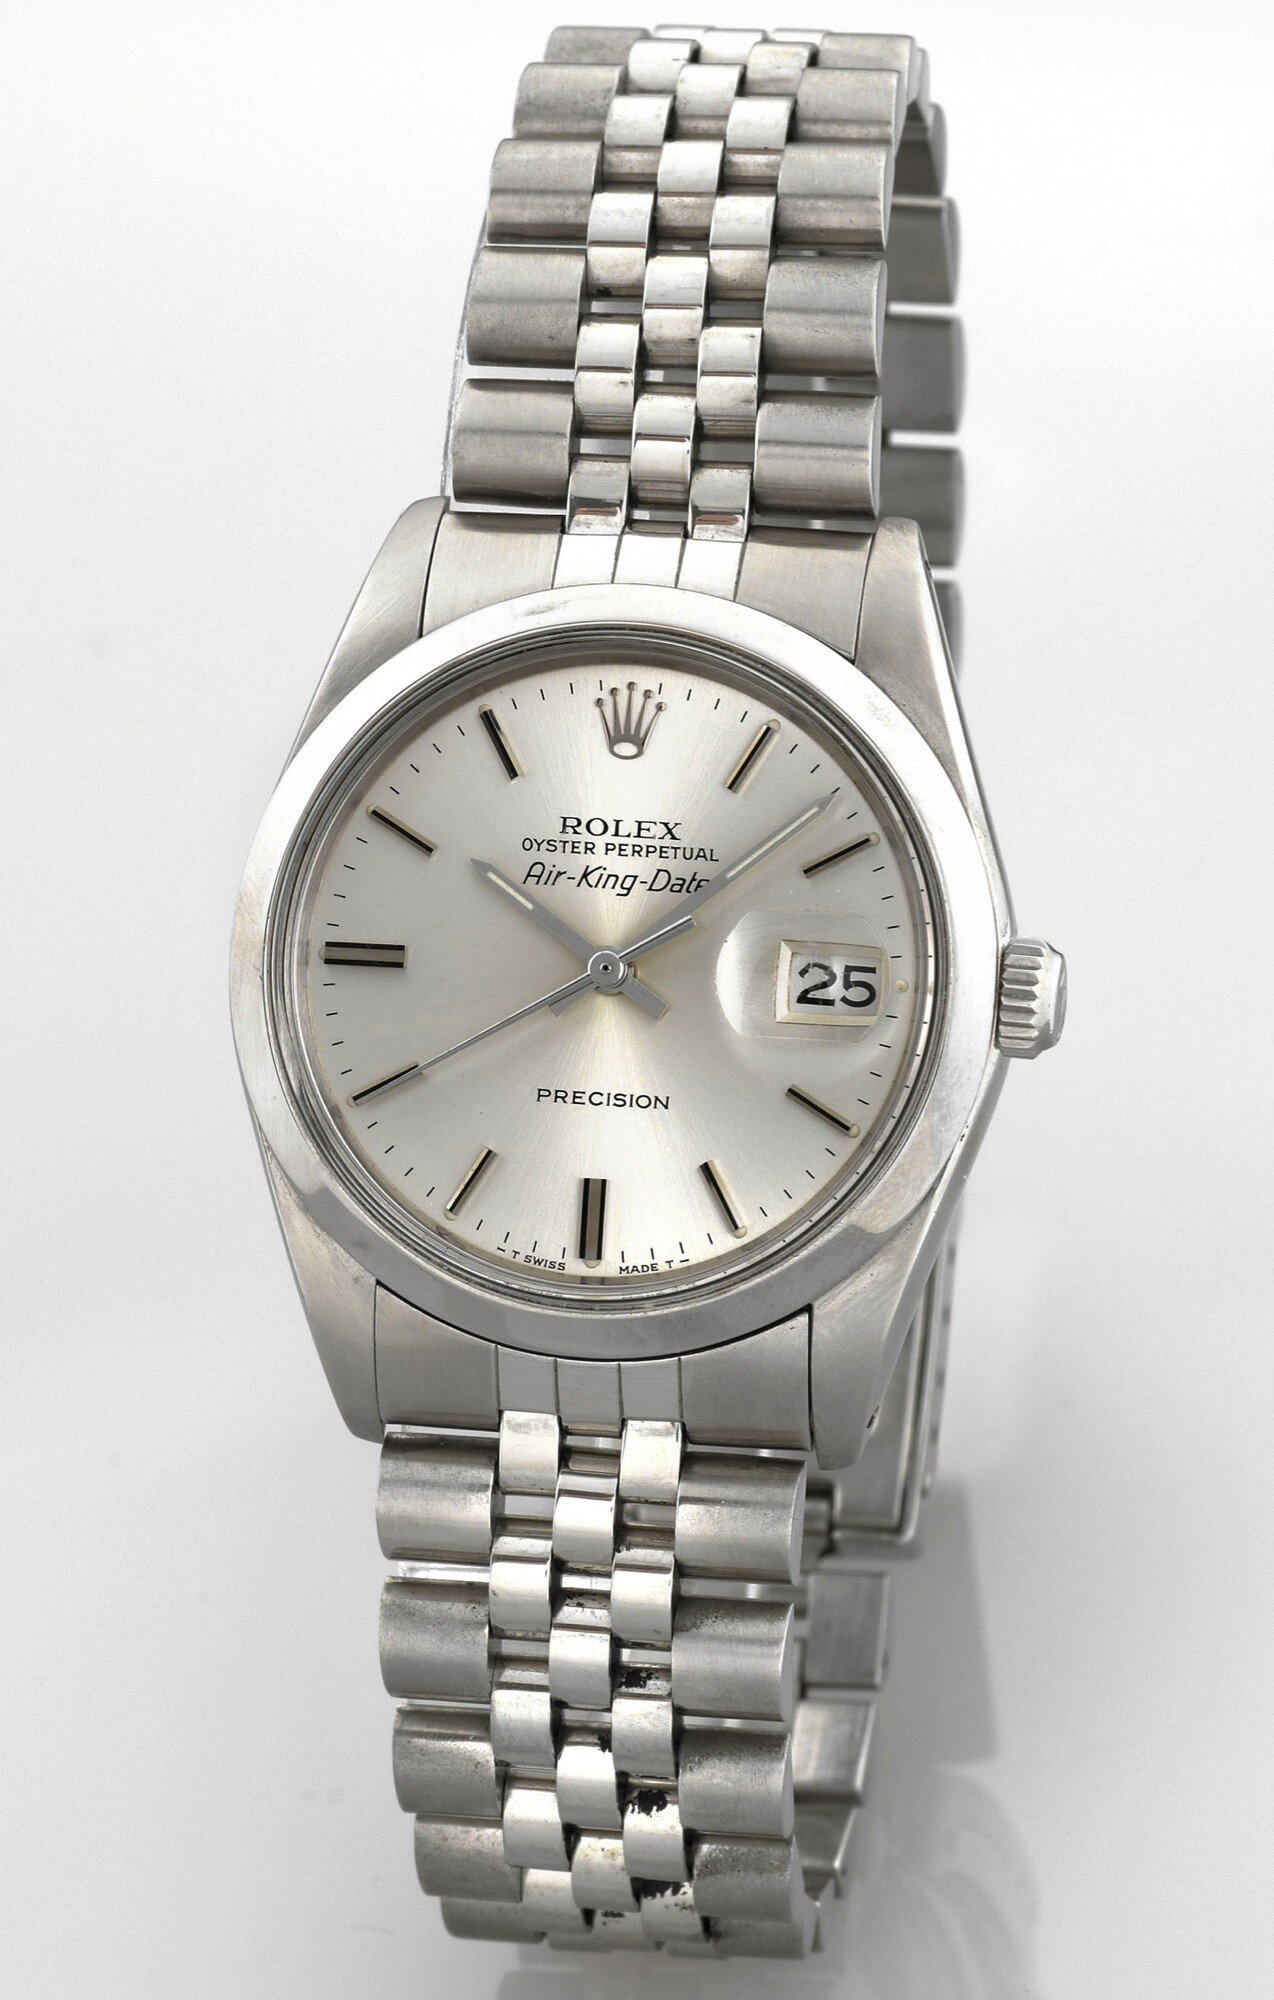 Air-King Date Ref. 5700 |  Antiquorum